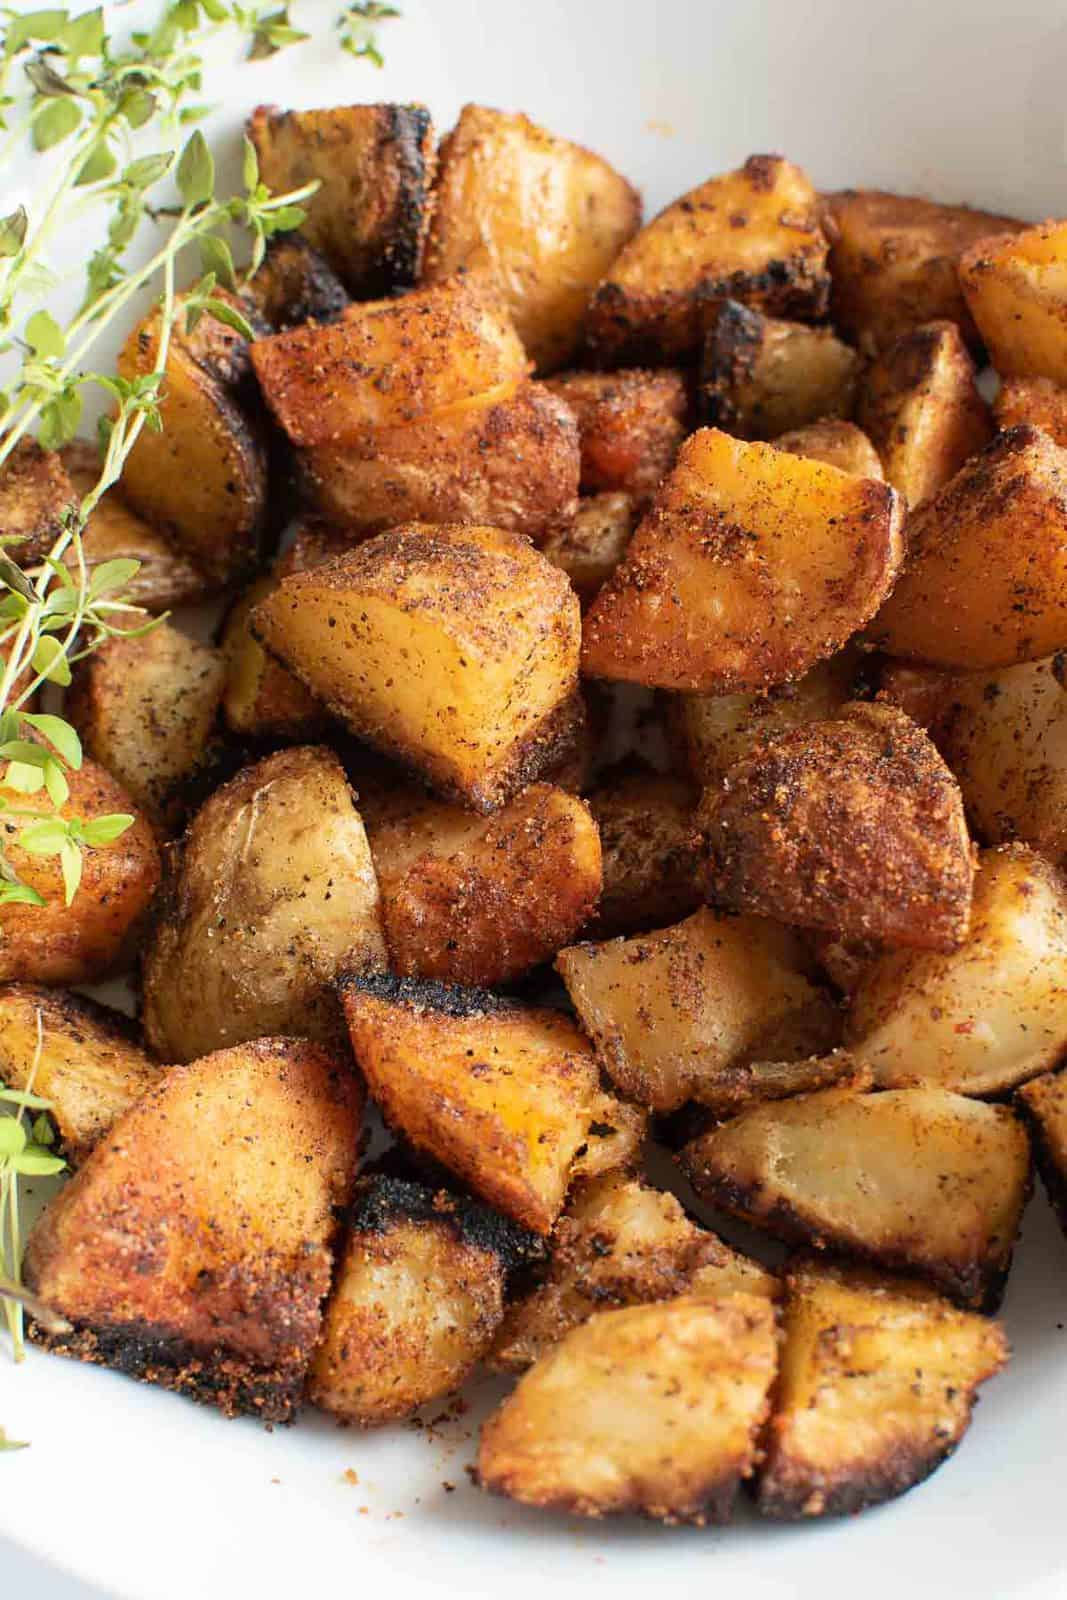 Close up of sauteed potatoes in a bowl.